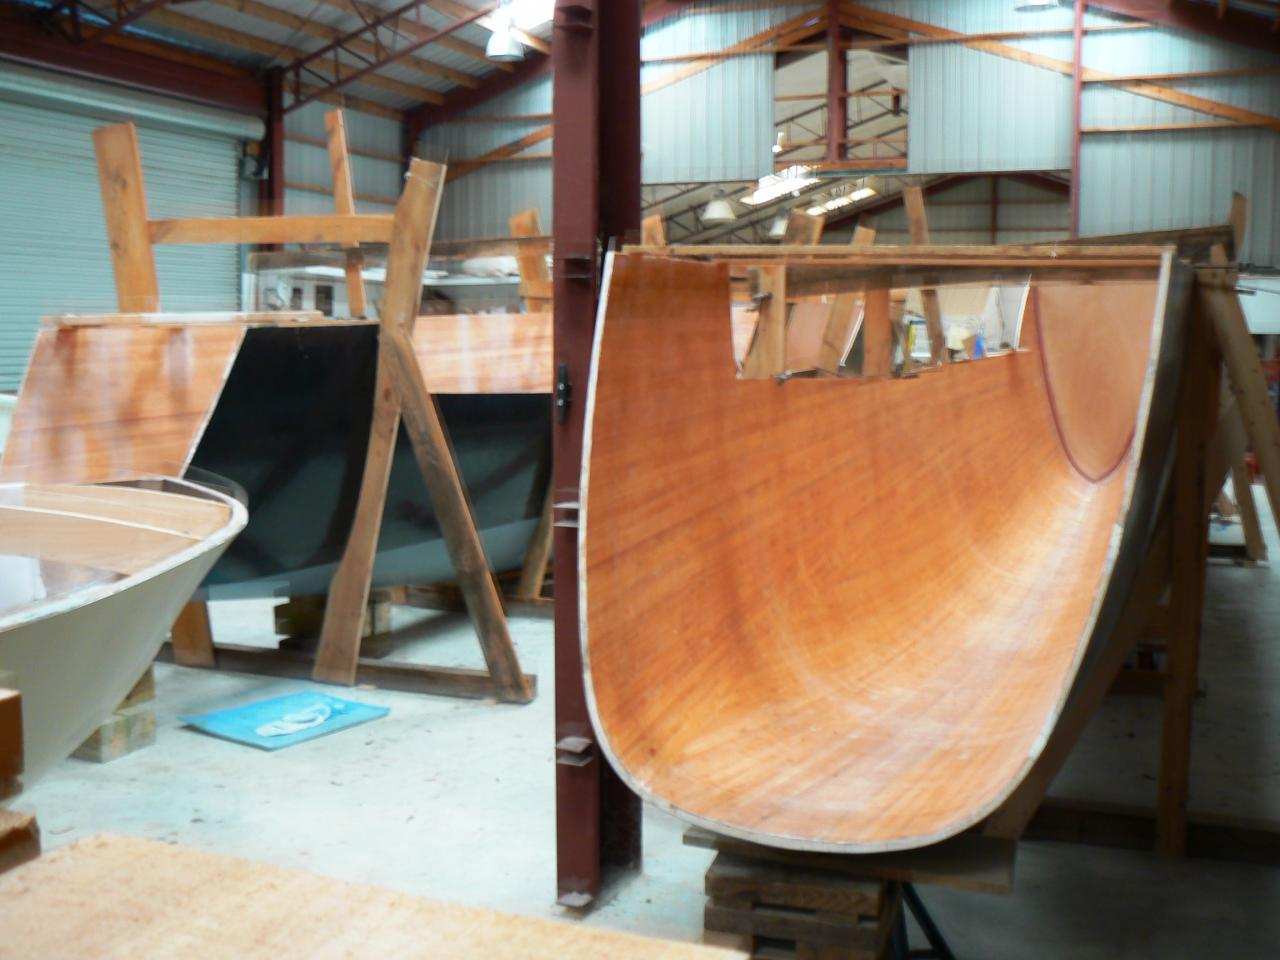 Joest Boats - Wood Boat Building